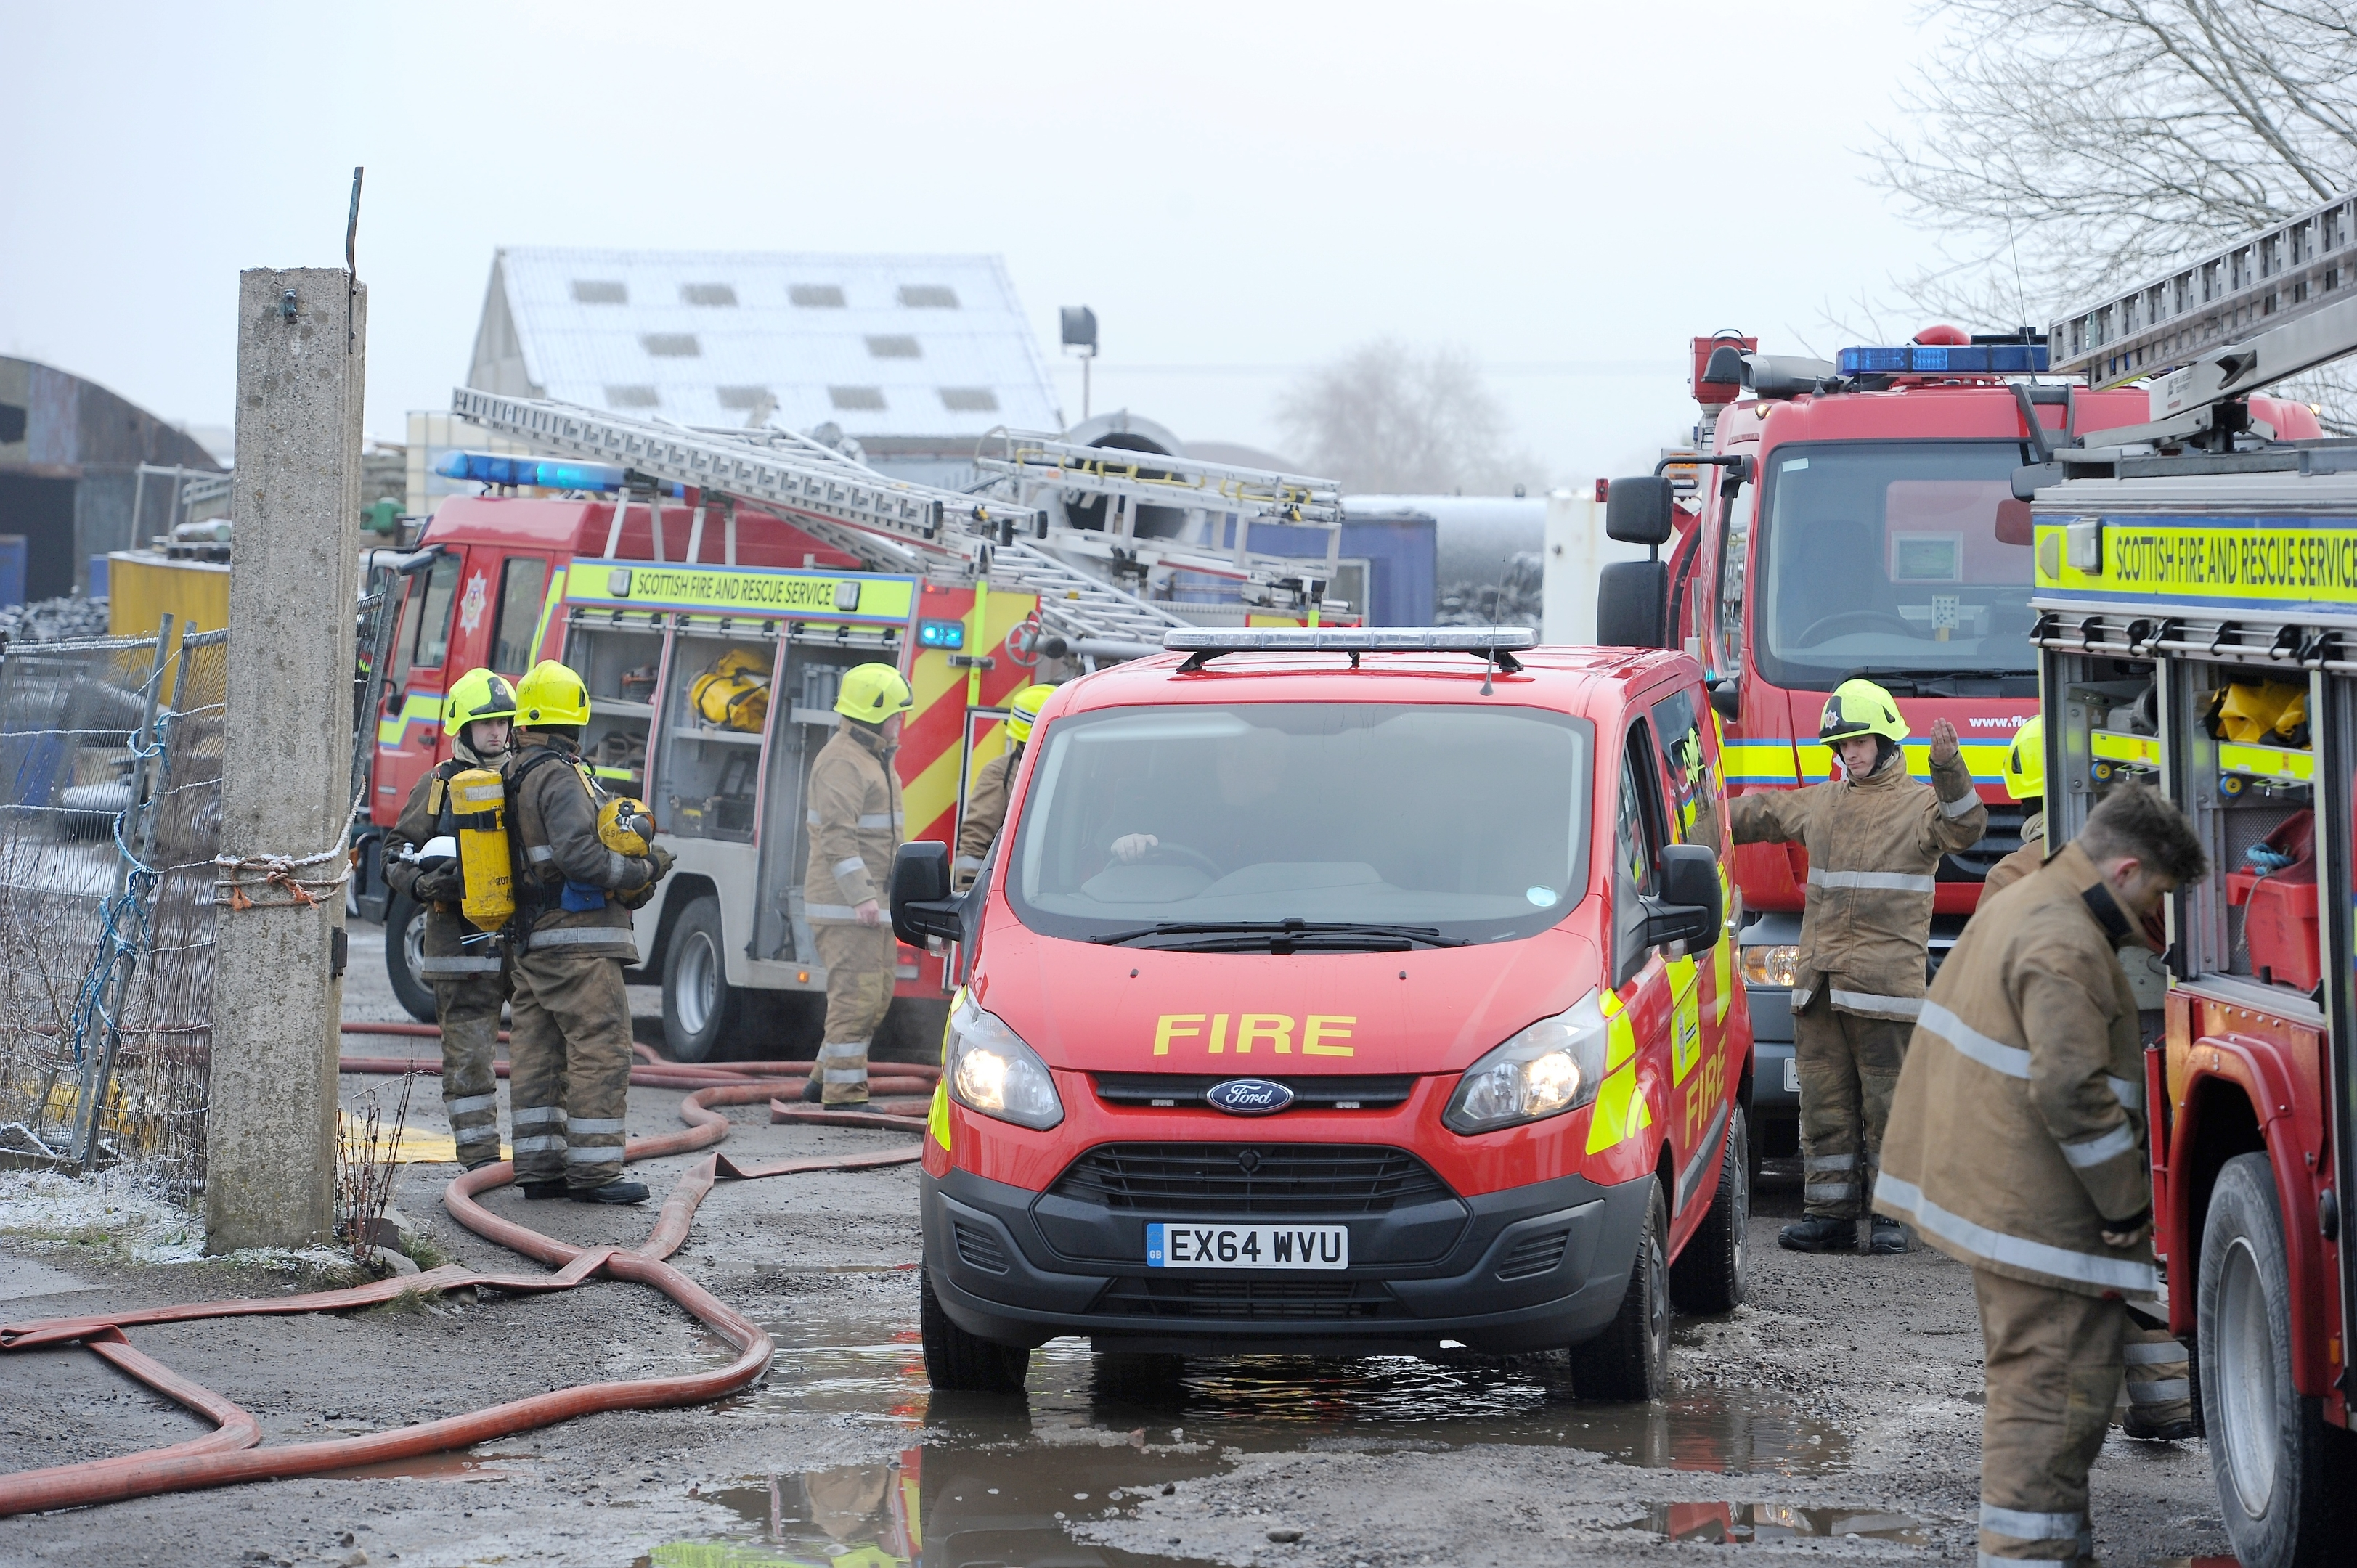 Firefighters deal with the fire which destroyed part of the Tarradale Game factory in Muir of Ord yesterday morning. (Friday)